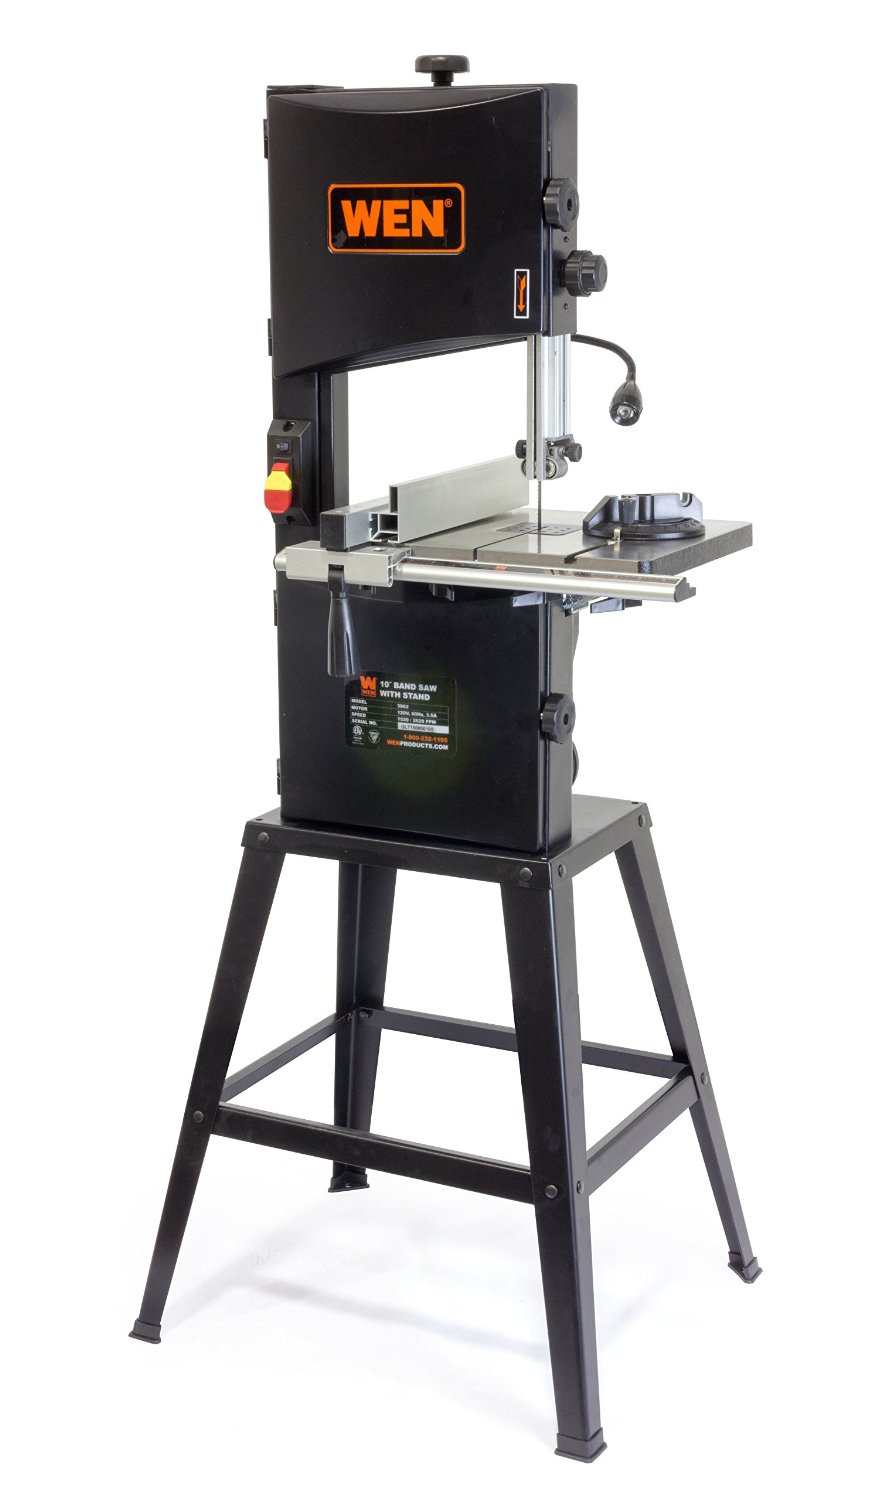 WEN 3962 Two-Speed Band Saw with Stand and Worklight 10